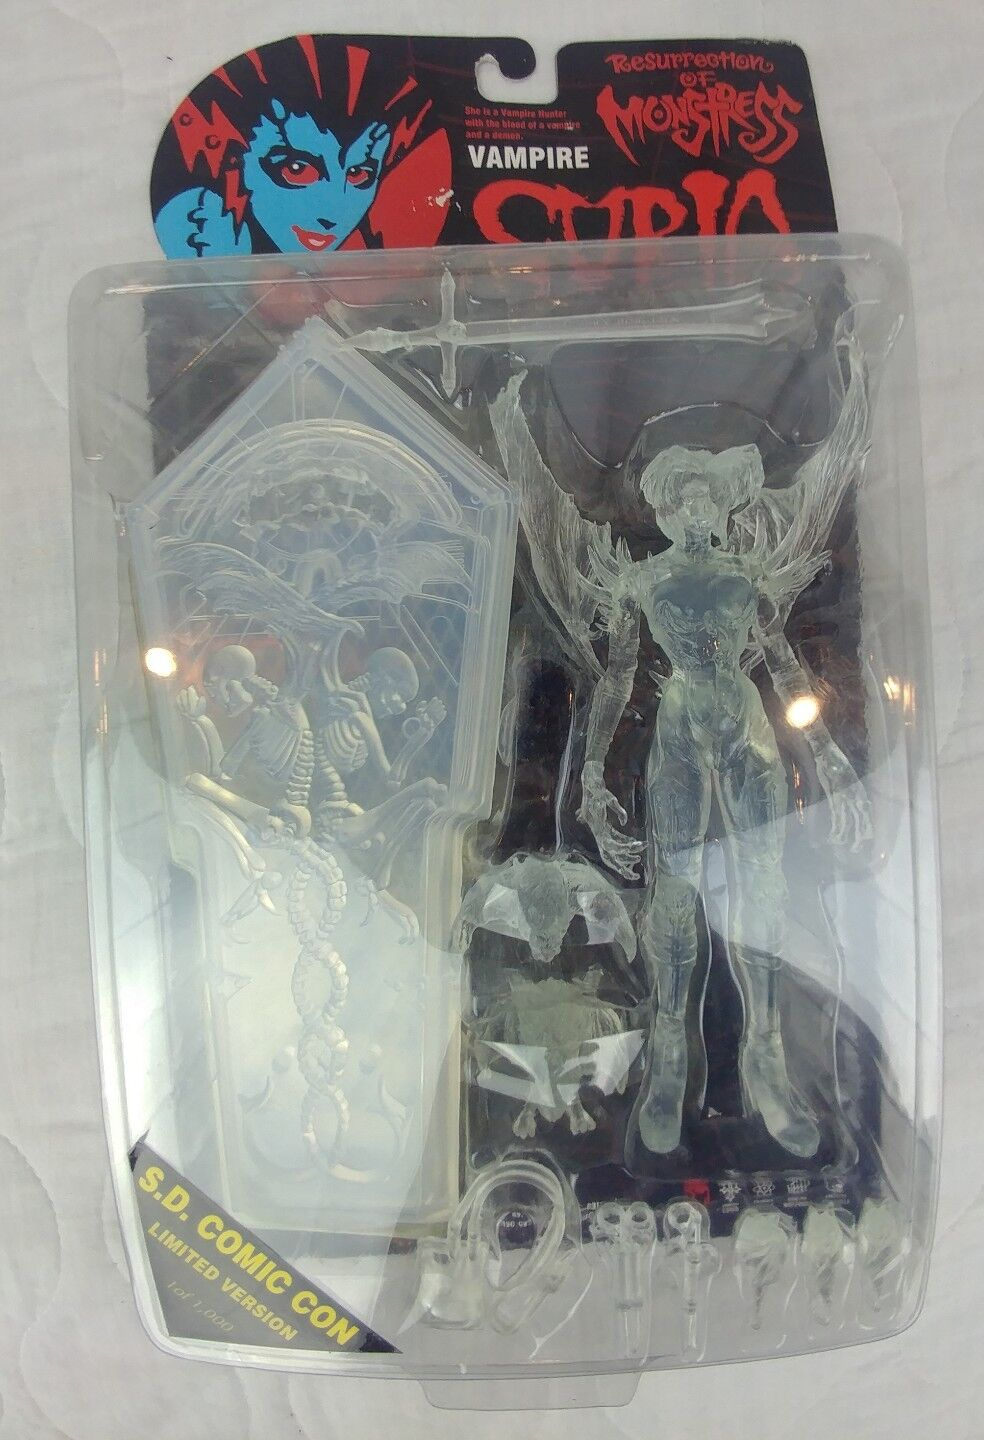 Resurrection of Monstress Vampire Curia S.D COMIC CON Clear Version 1 OF 1000